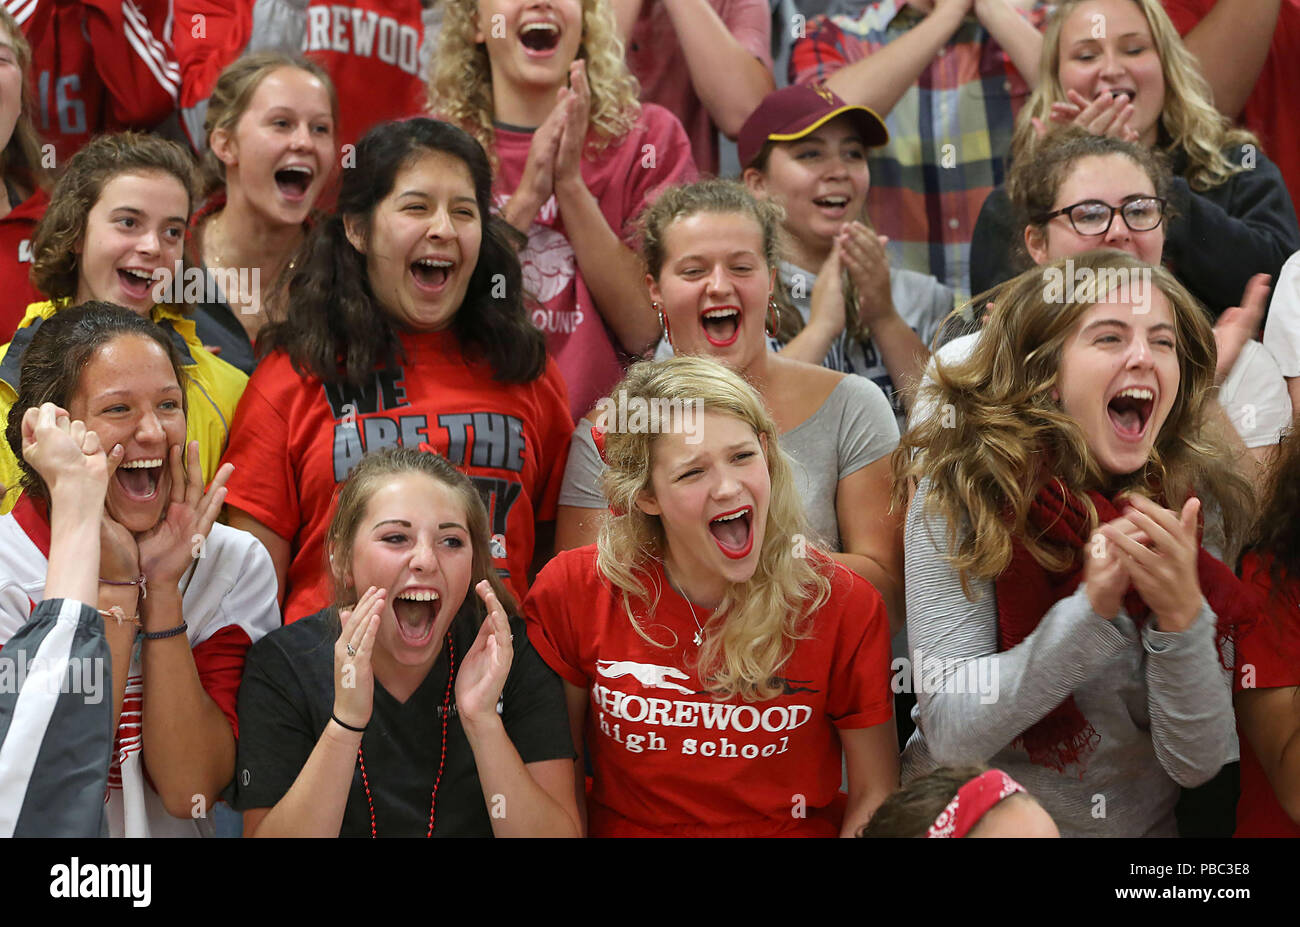 Cheering section at an American high school. - Stock Image